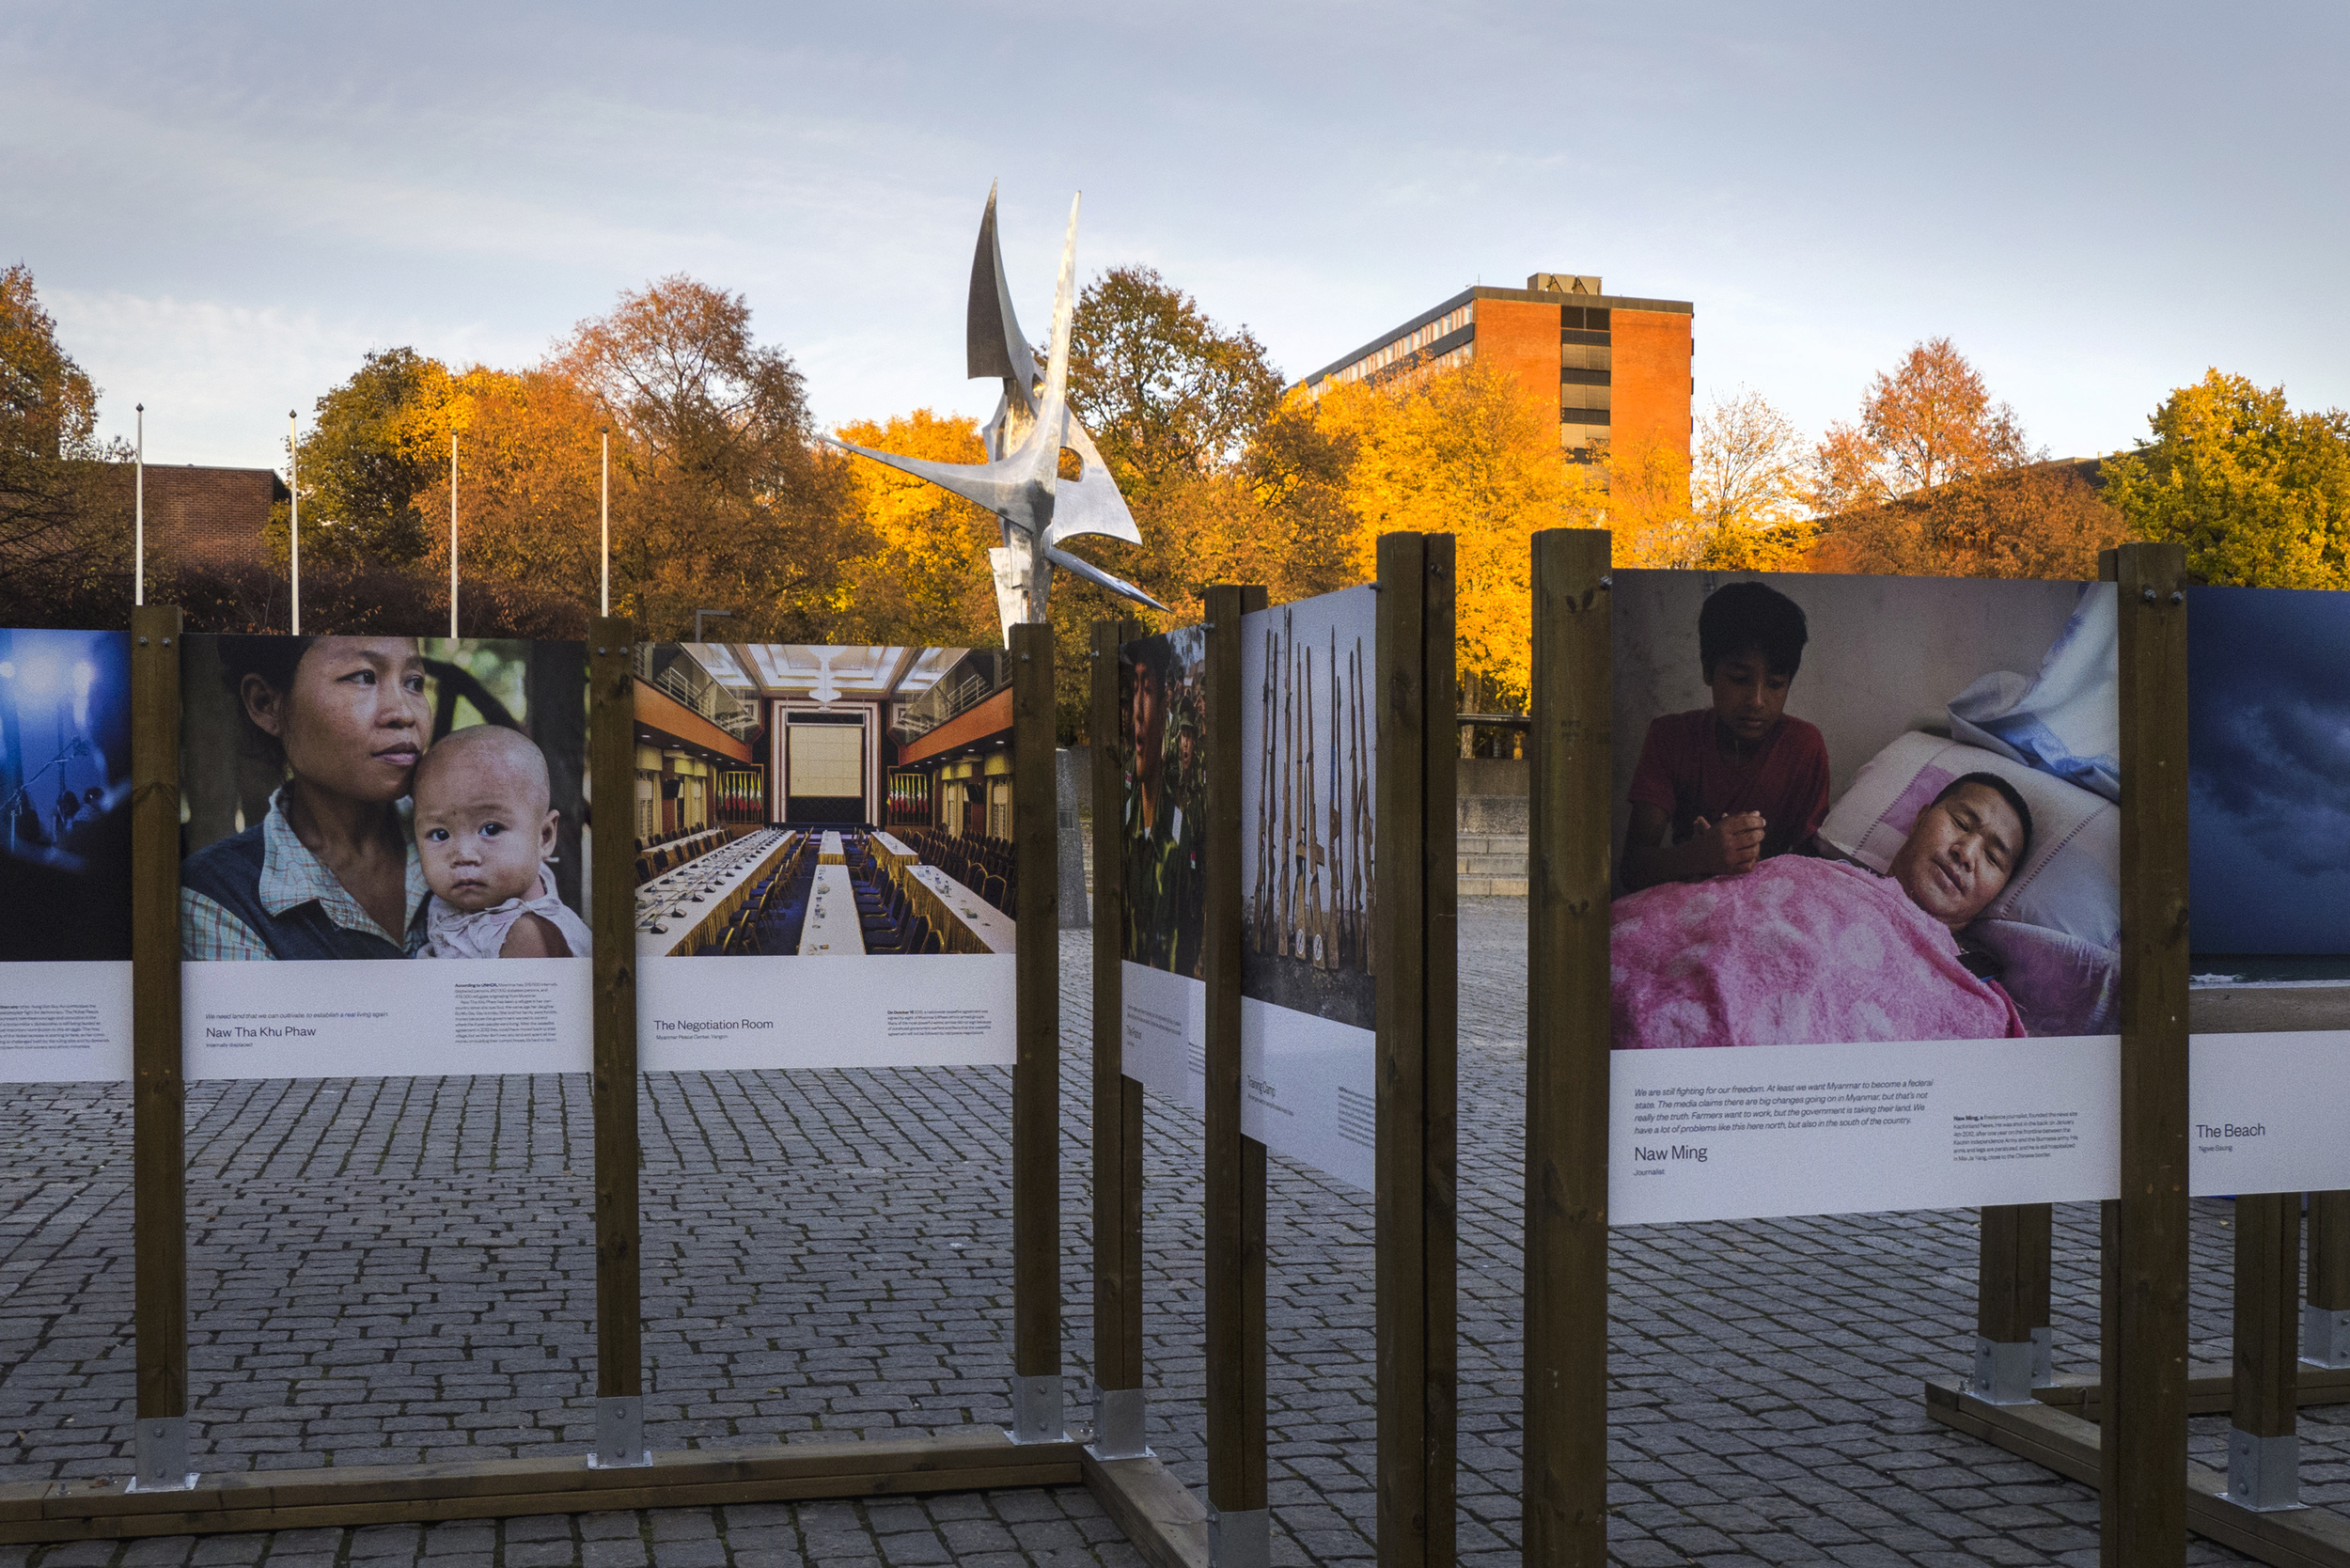 During the weeks before and after the Myanmar election on November 8 2015, the project was exhibited at the campus square at Oslo University.